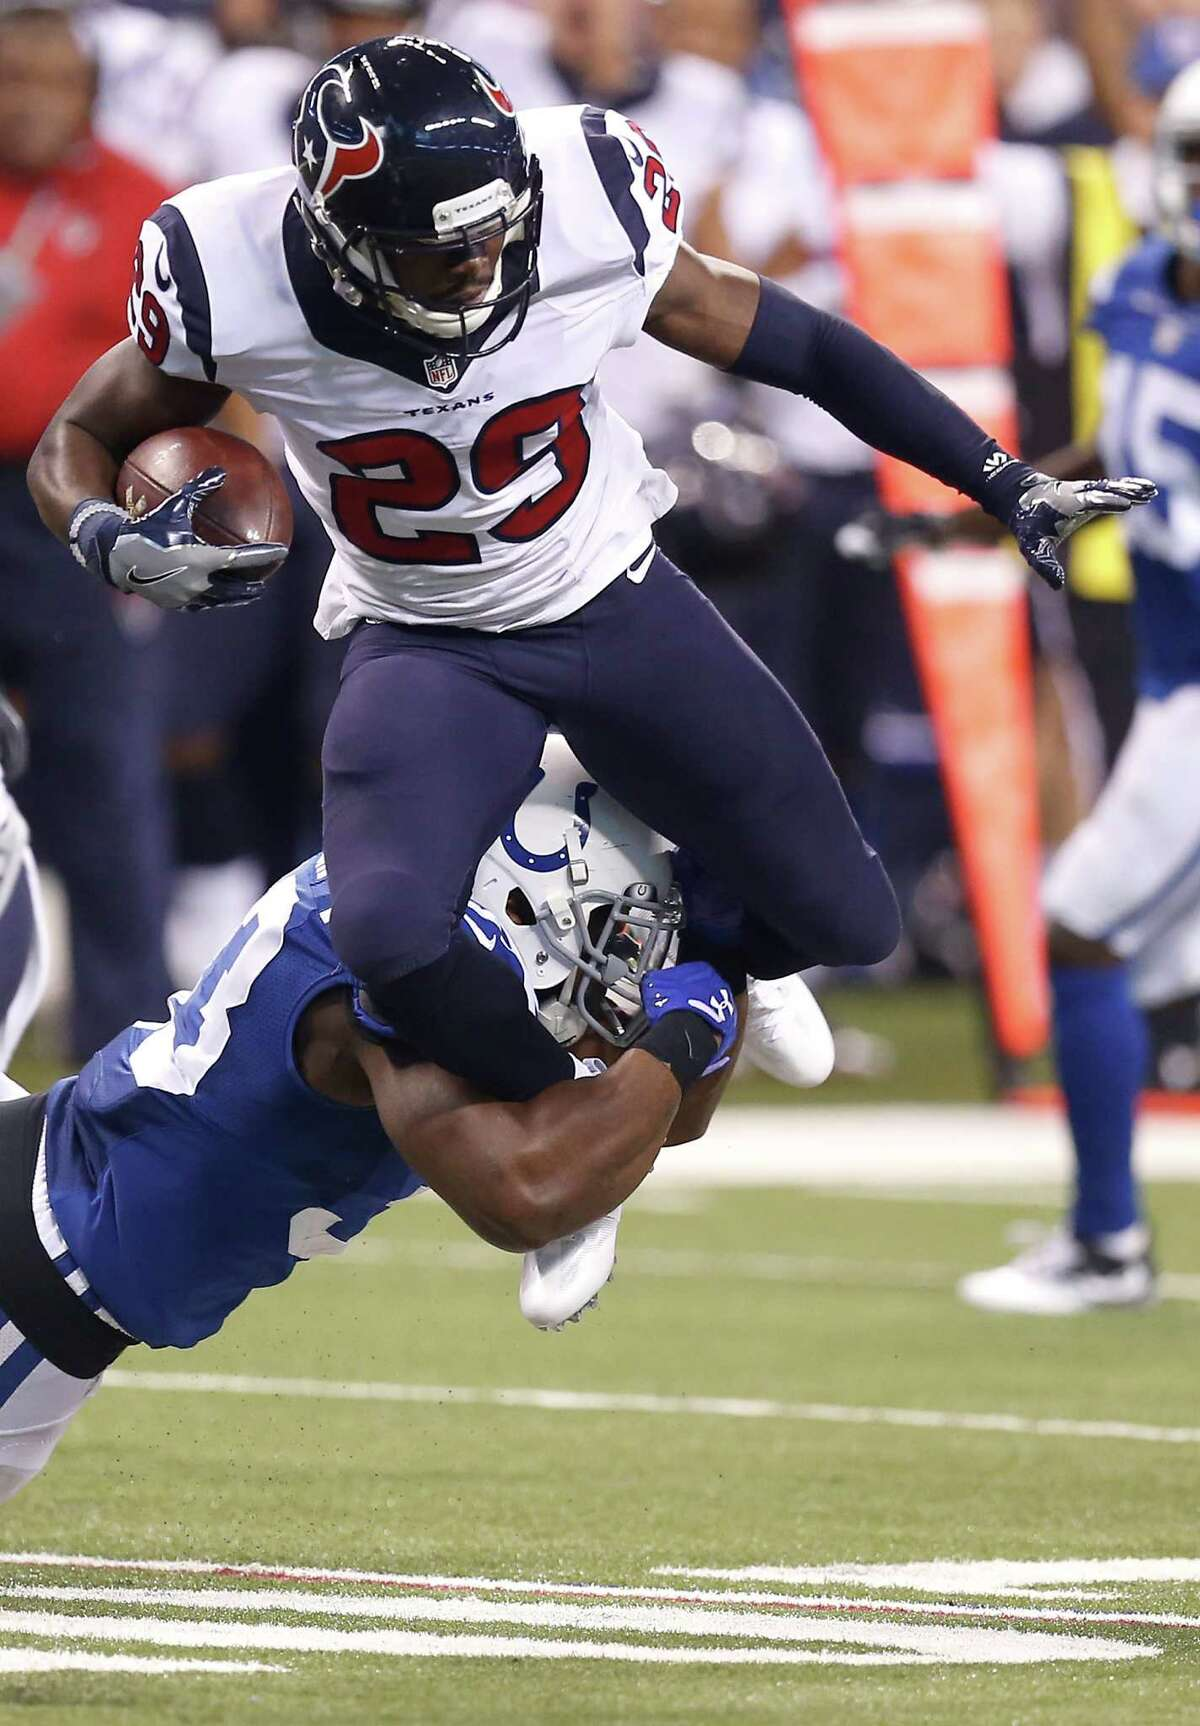 Houston Texans free safety Andre Hal (29) is tackled by Indianapolis Colts running back Robert Turbin (33) after Hal intercepted an Andrew Luck pass during the third quarter of an NFL football game at Lucas Oil Stadium on Sunday, Dec. 11, 2016, in Indianapolis. ( Brett Coomer / Houston Chronicle )